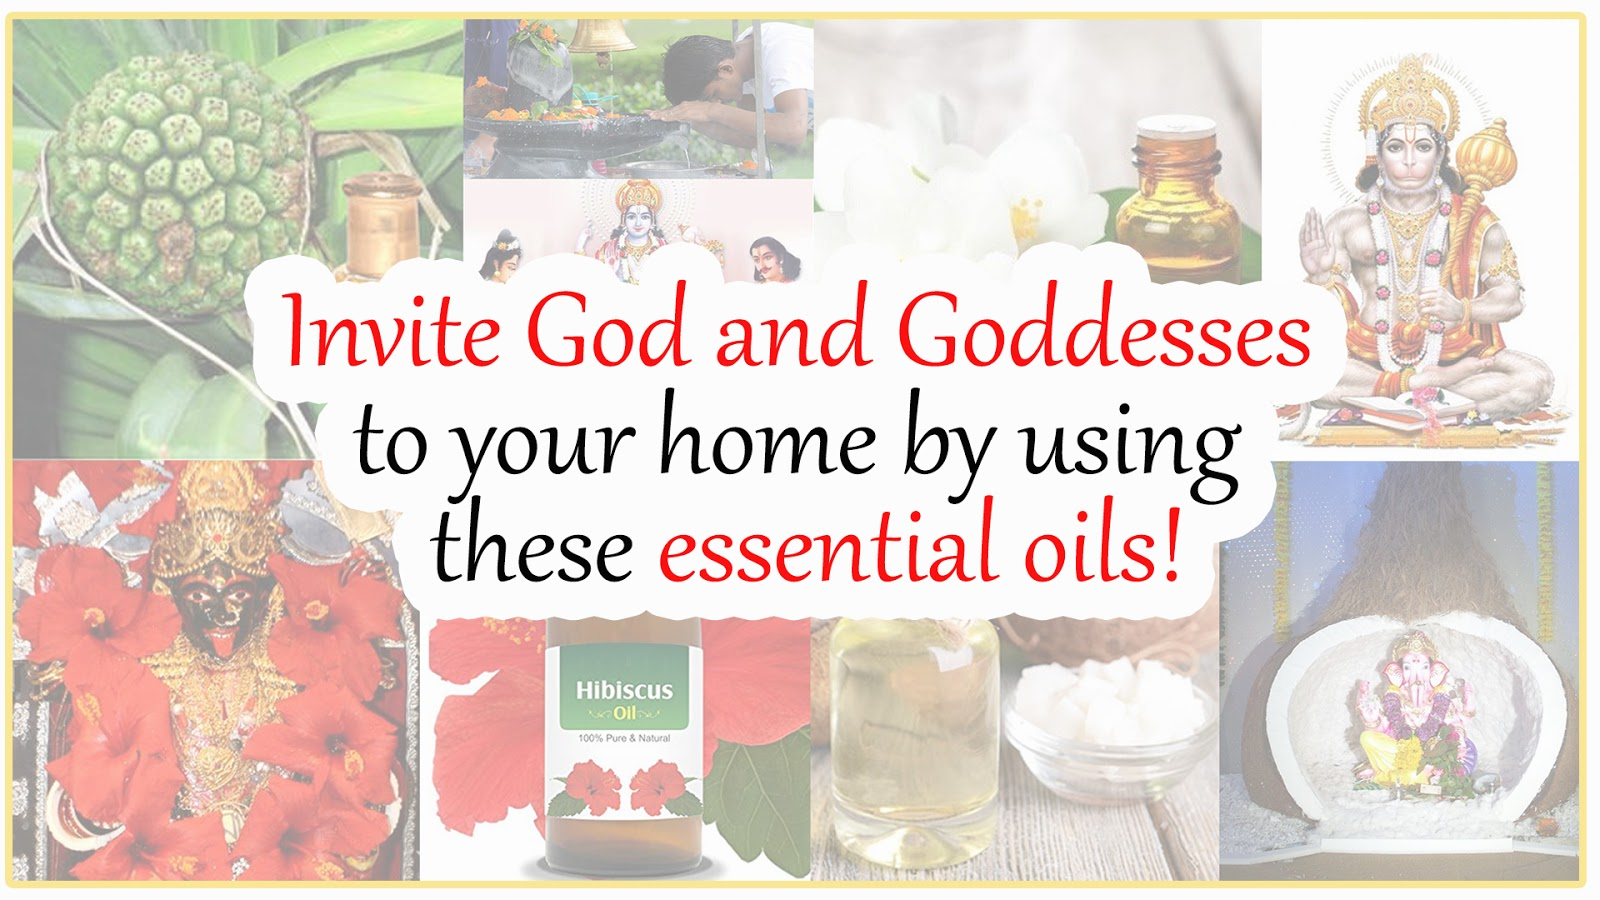 Blog - Invite God and Goddesses to your home by using these